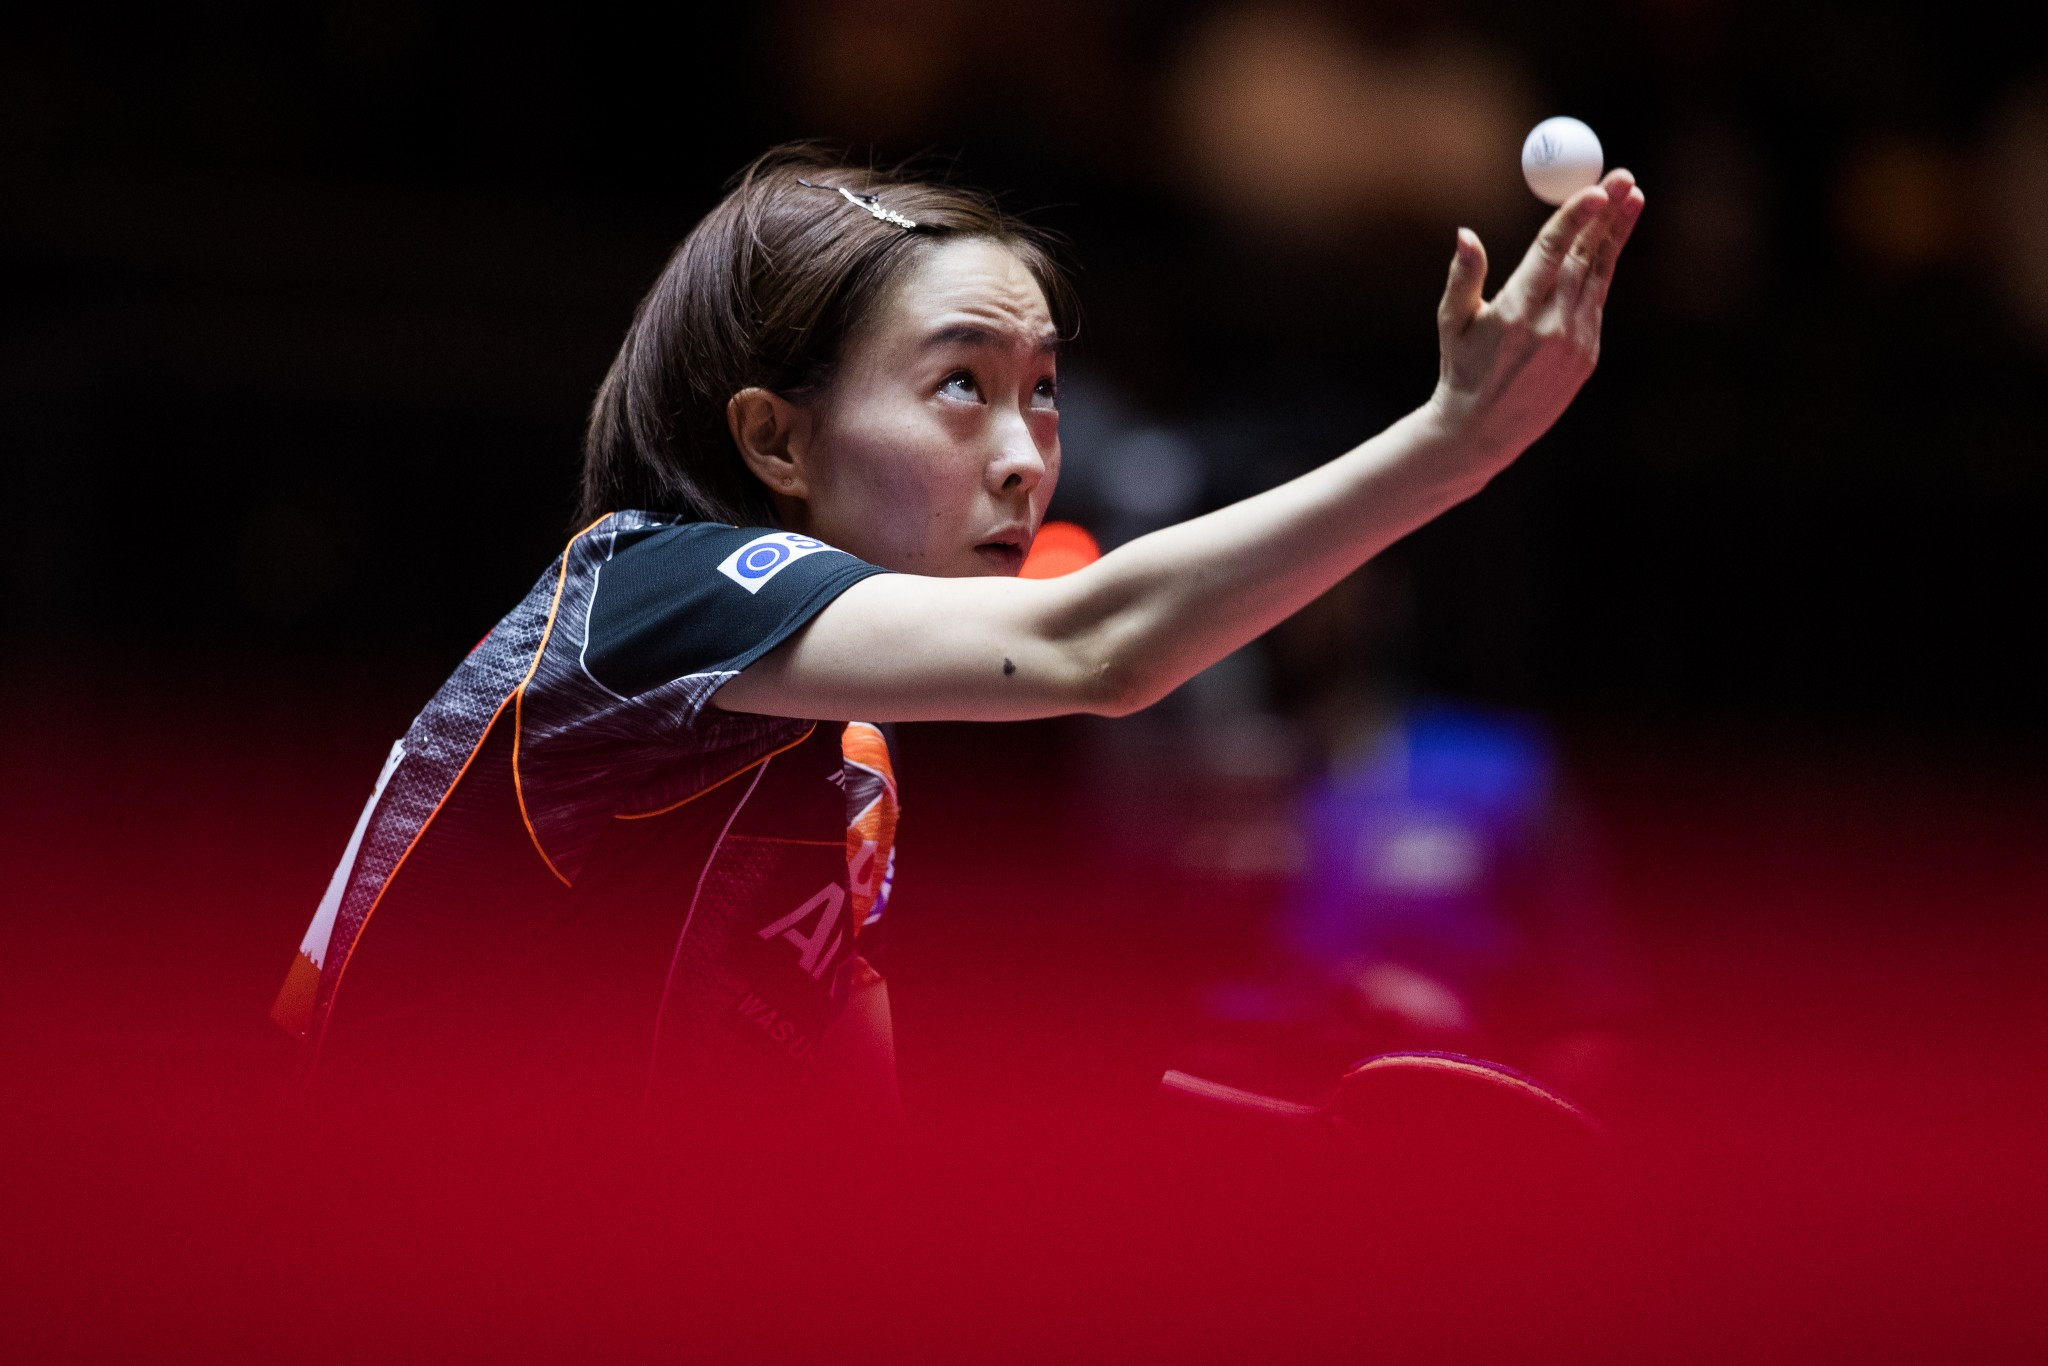 Kasumi Ishikawa is the top seed in the women's singles event ©Getty Images